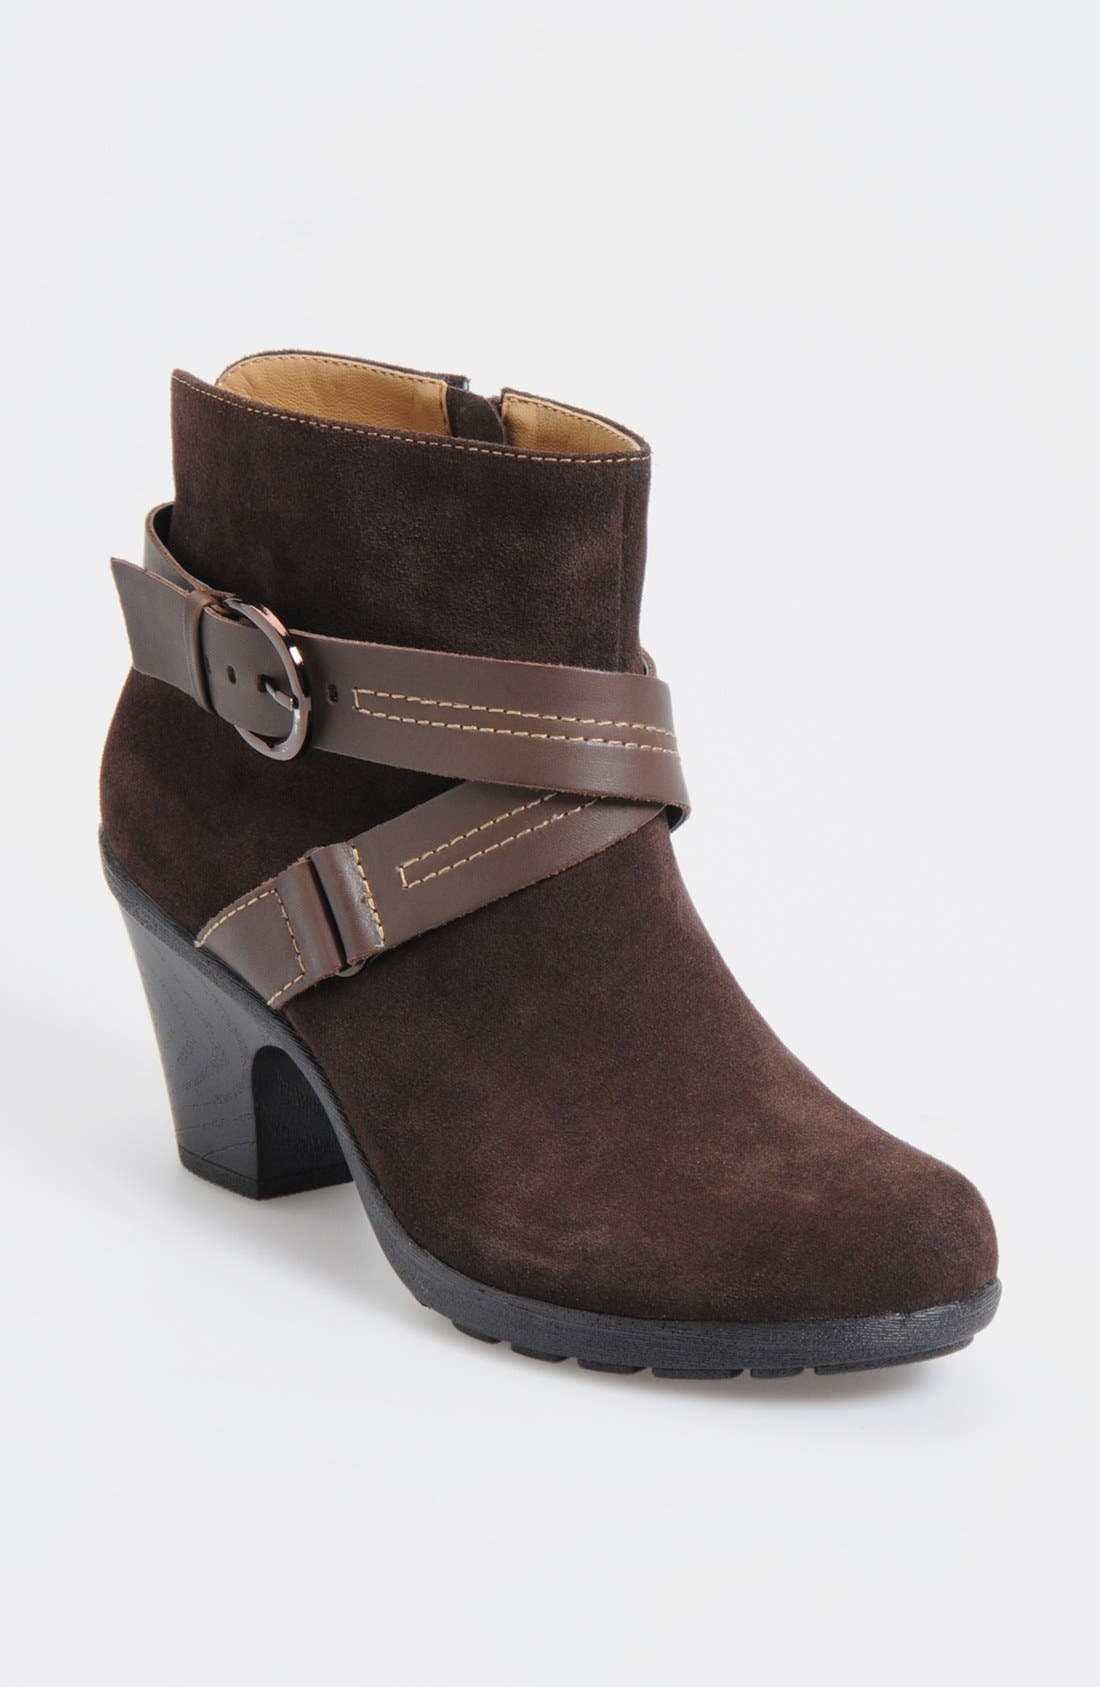 Alternate Image 1 Selected - Softspots 'Cady' Boot